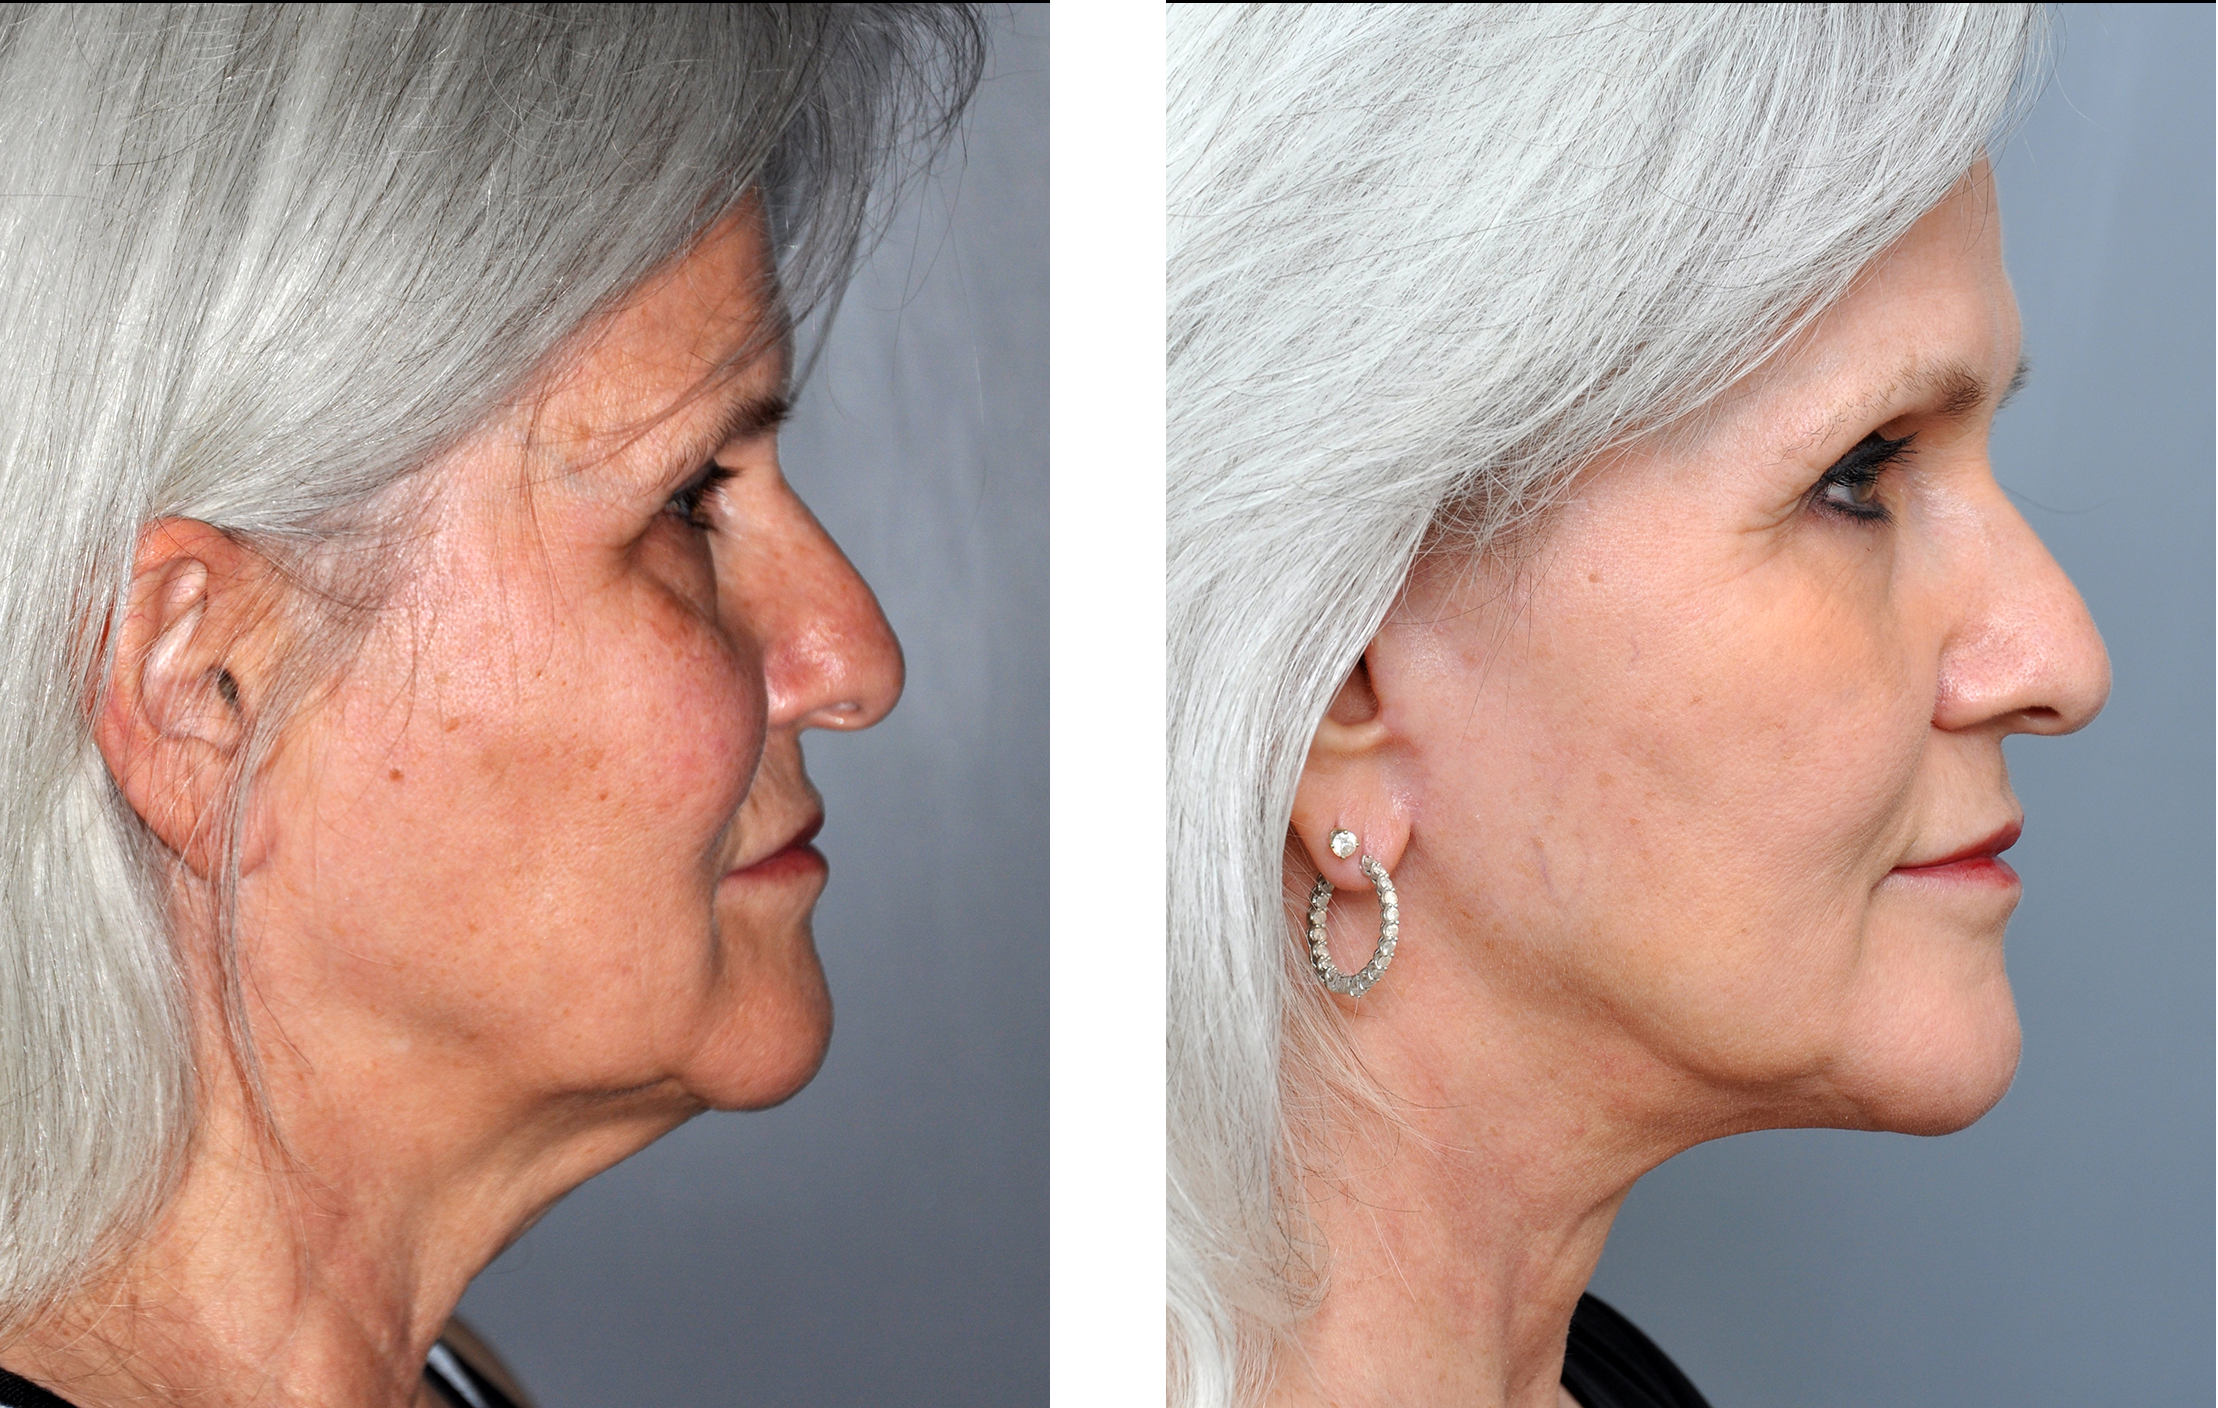 Can recommend Facial resurfacing before and after casually come